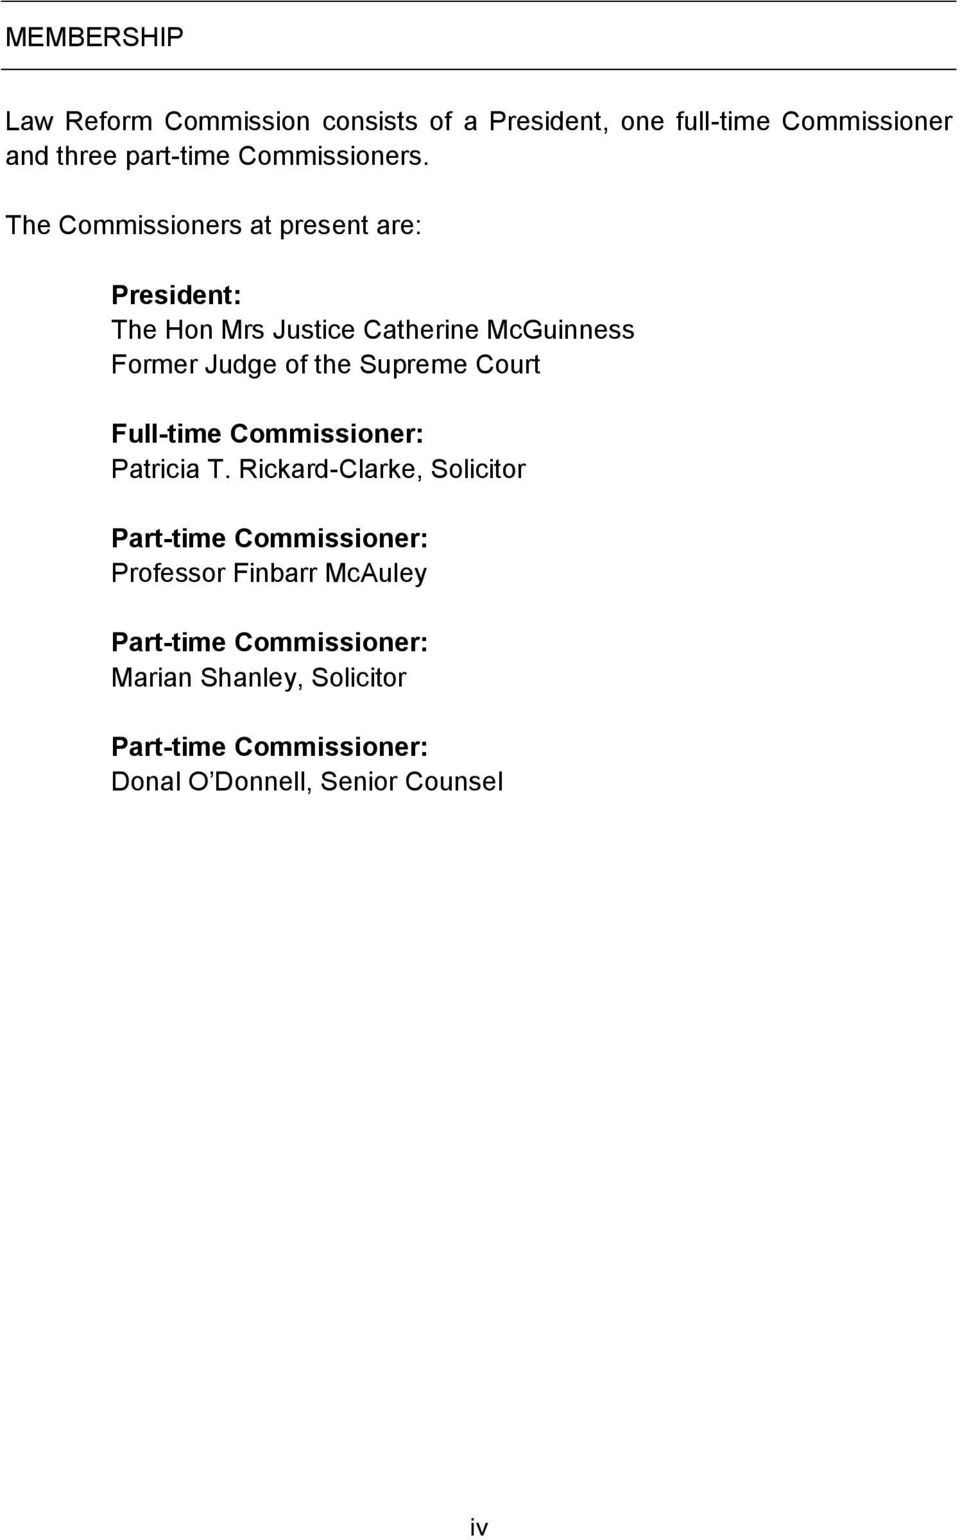 The Commissioners at present are: President: The Hon Mrs Justice Catherine McGuinness Former Judge of the Supreme